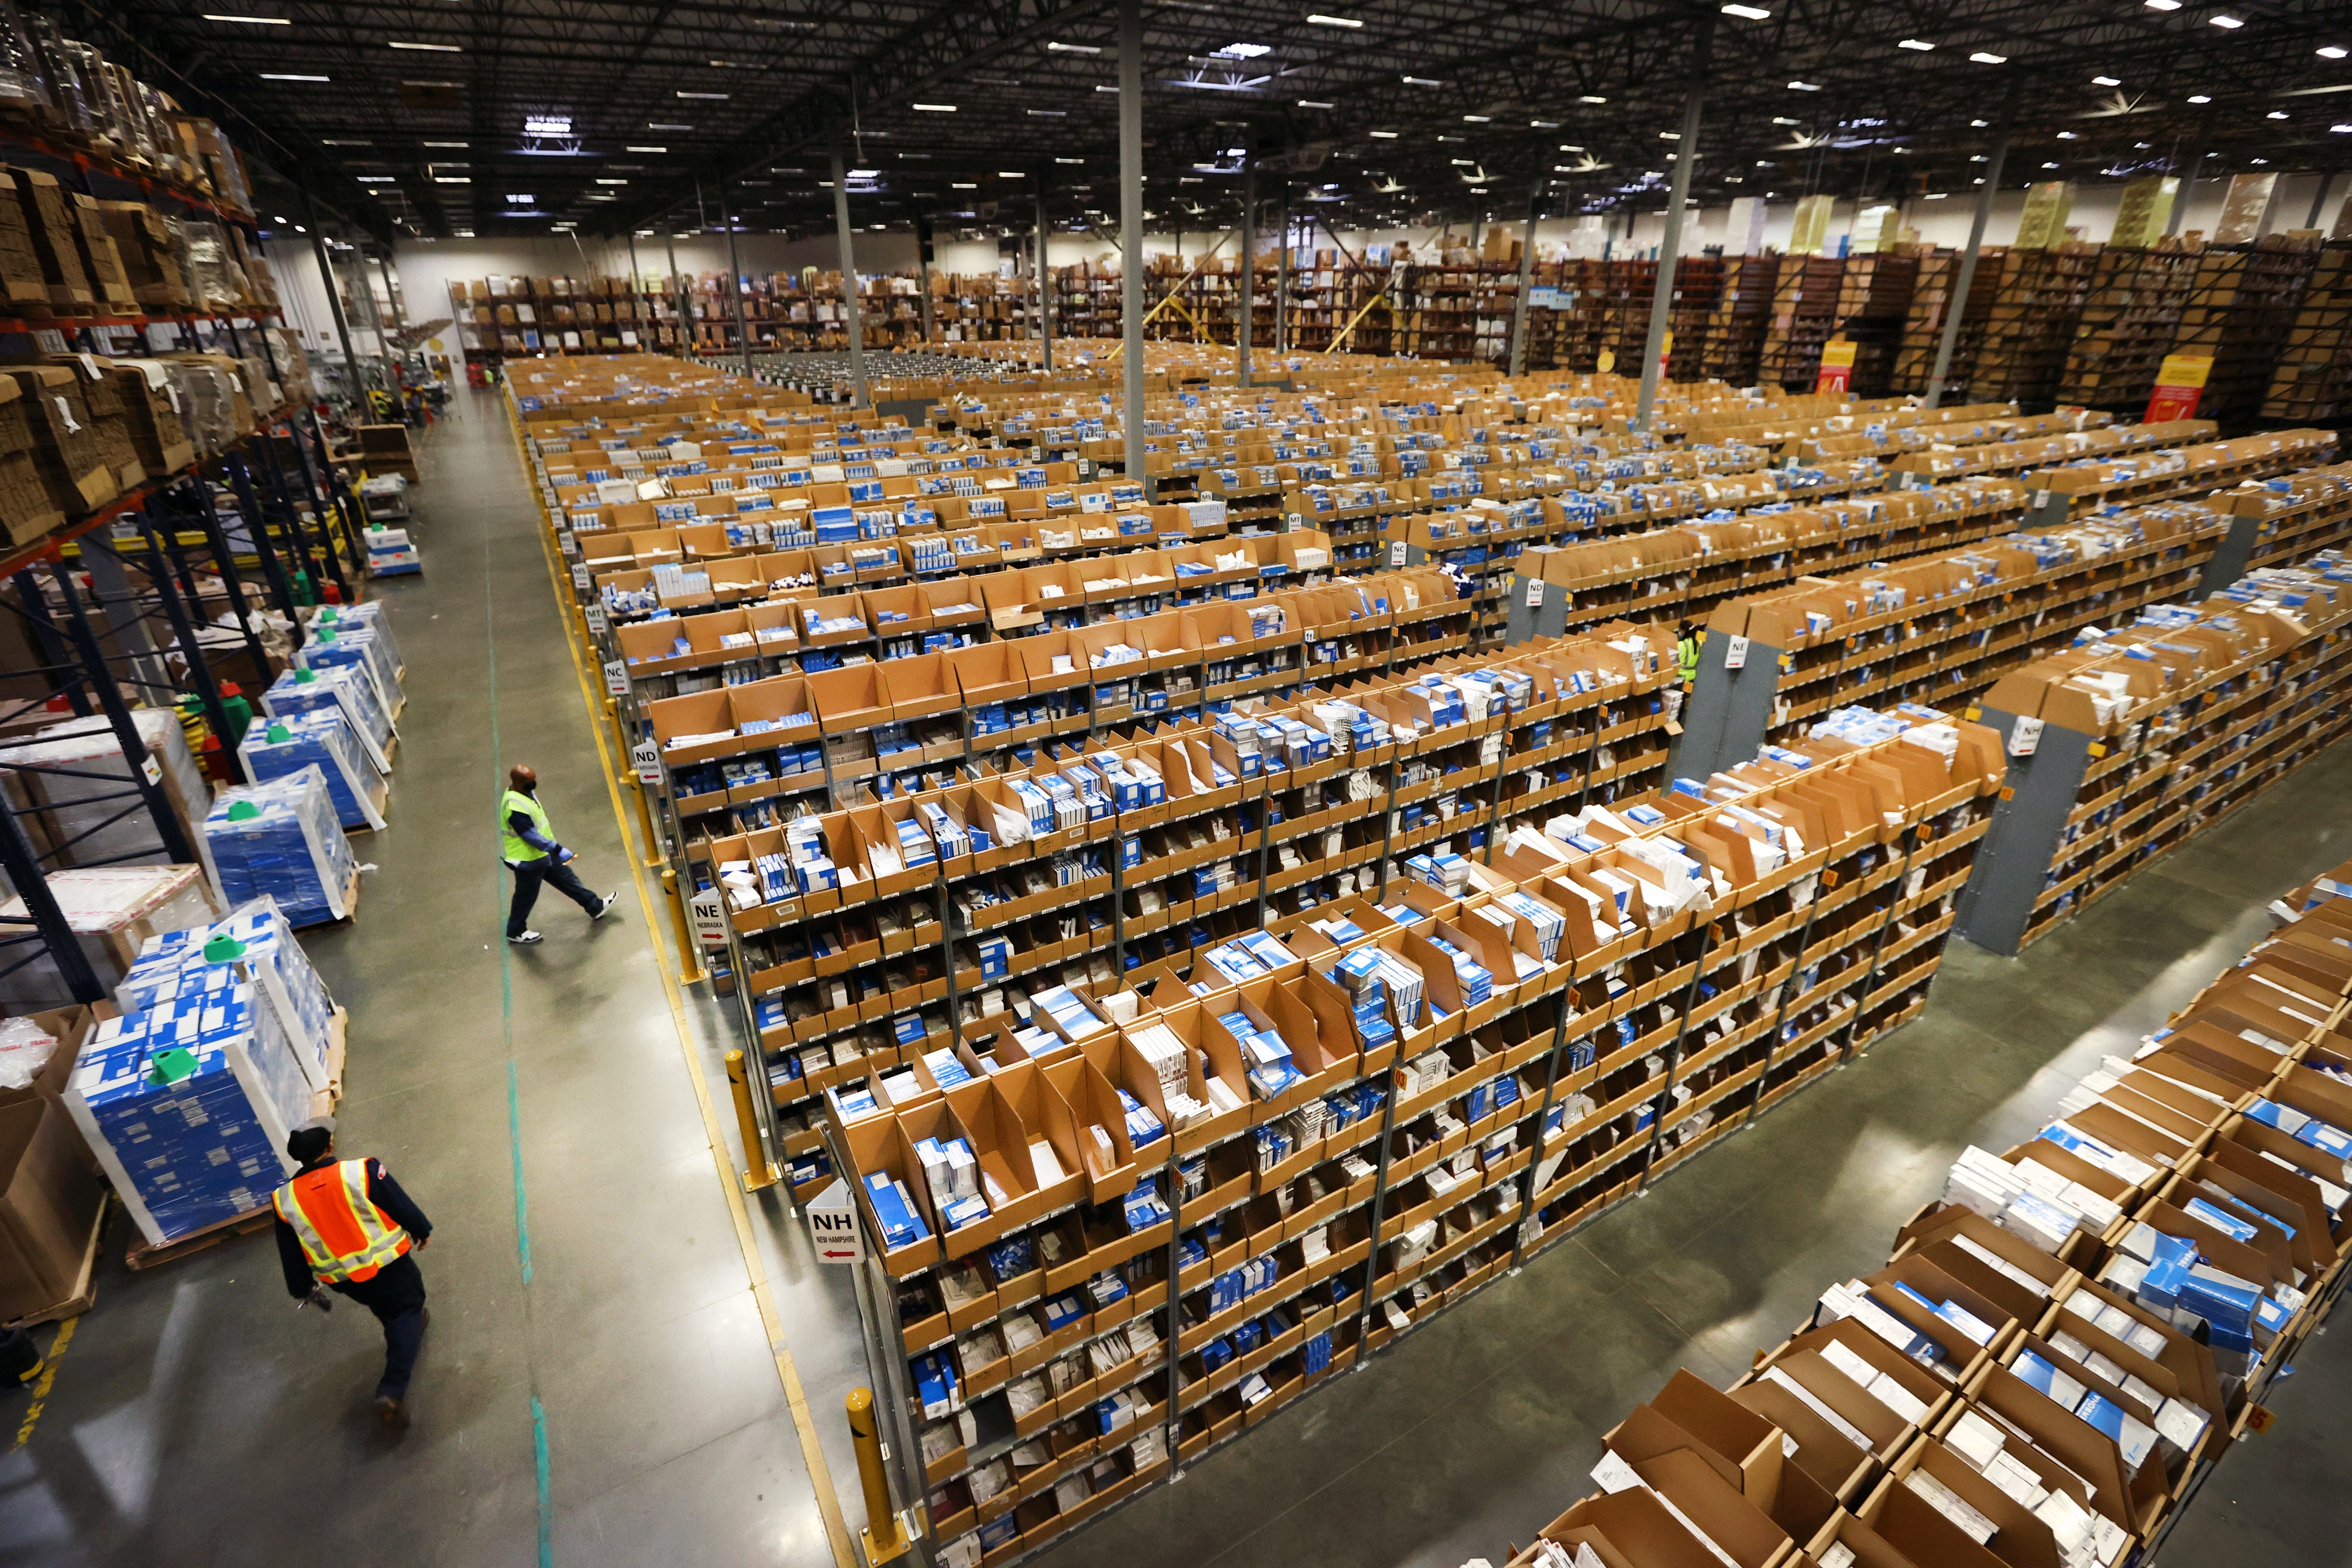 Tens of thousands of medical supply packages are sorted daily for regional and international shipping from the DHL Supply Chain facility in Southaven Monday, Oct. 5, 2020.Jrca5015